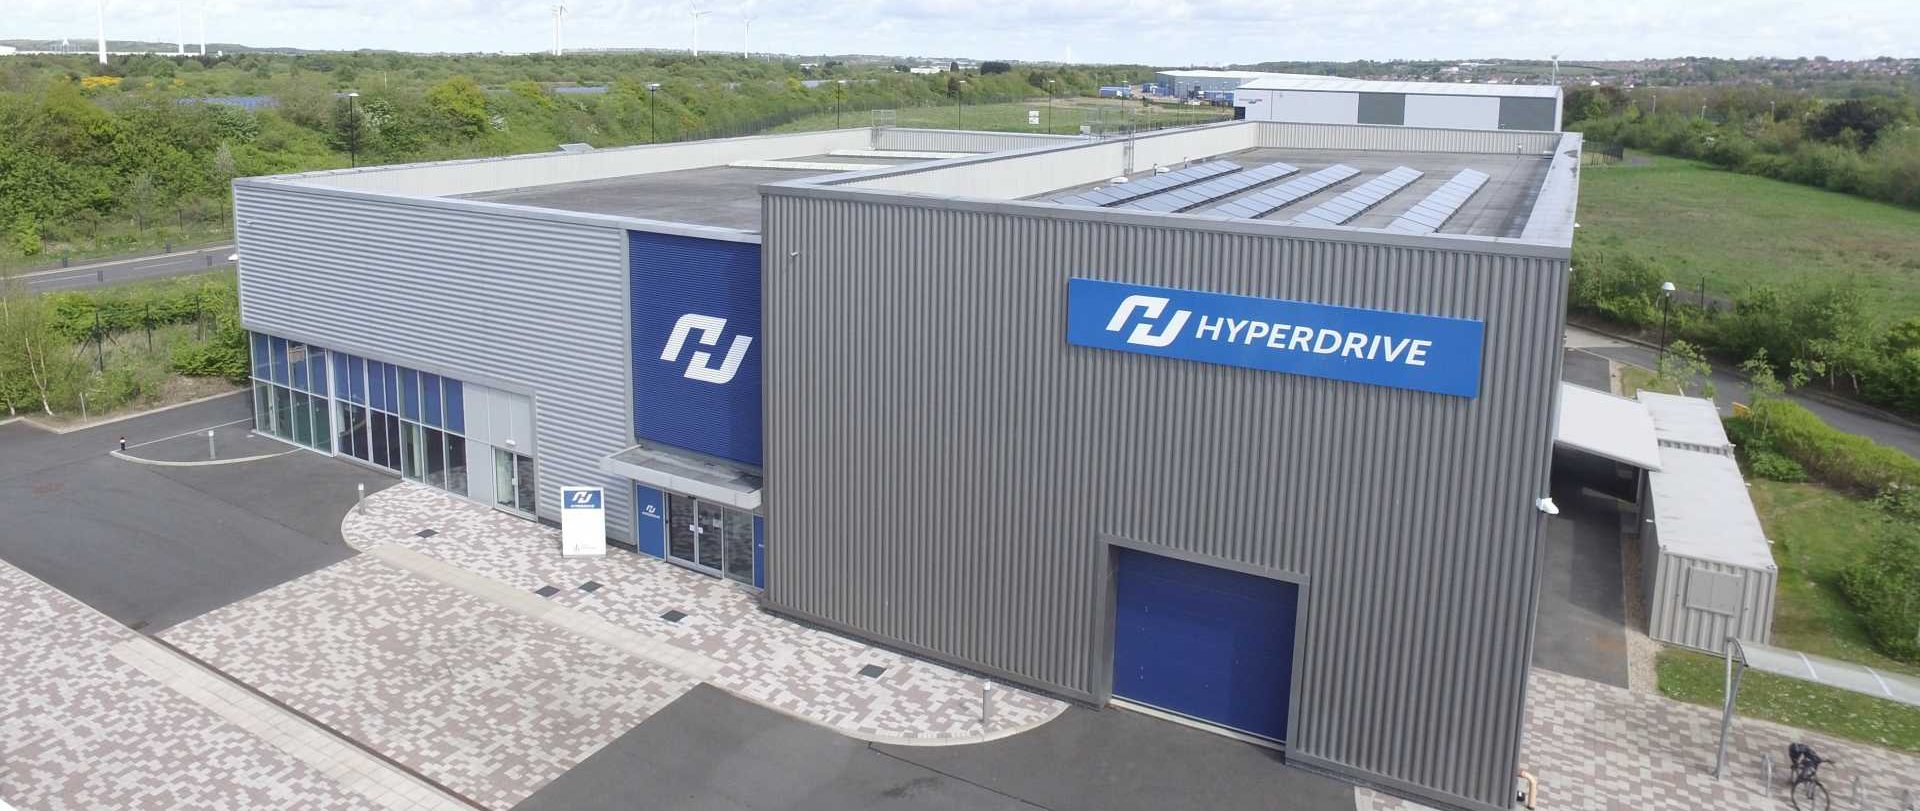 Hyperdrive building drone shot - image courtesy of Hyperdrive Innovation